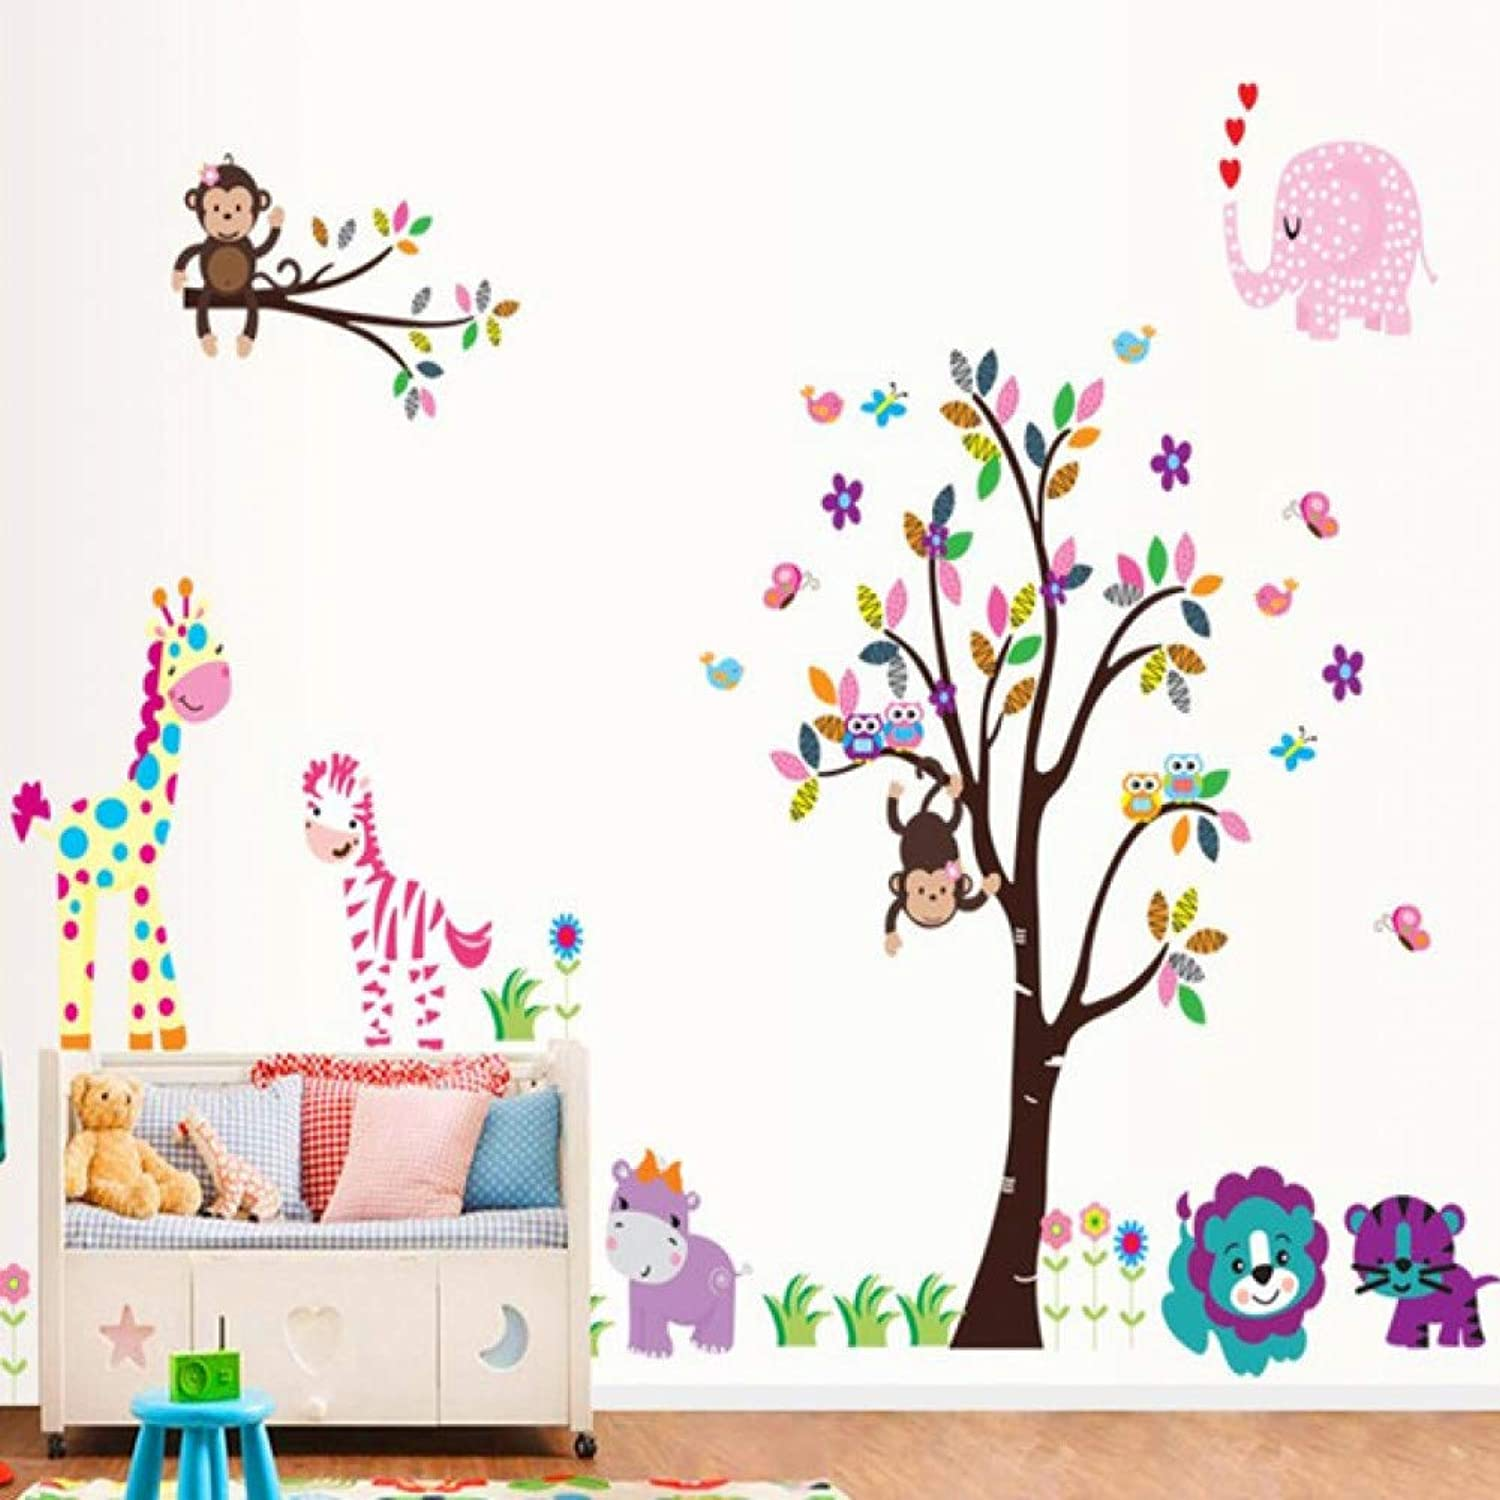 Nyc Subway Map Bedroom Wall Decal.Poster Mural Art Wall Tree Colorful On Playing Monkey Cartoon Alxchd